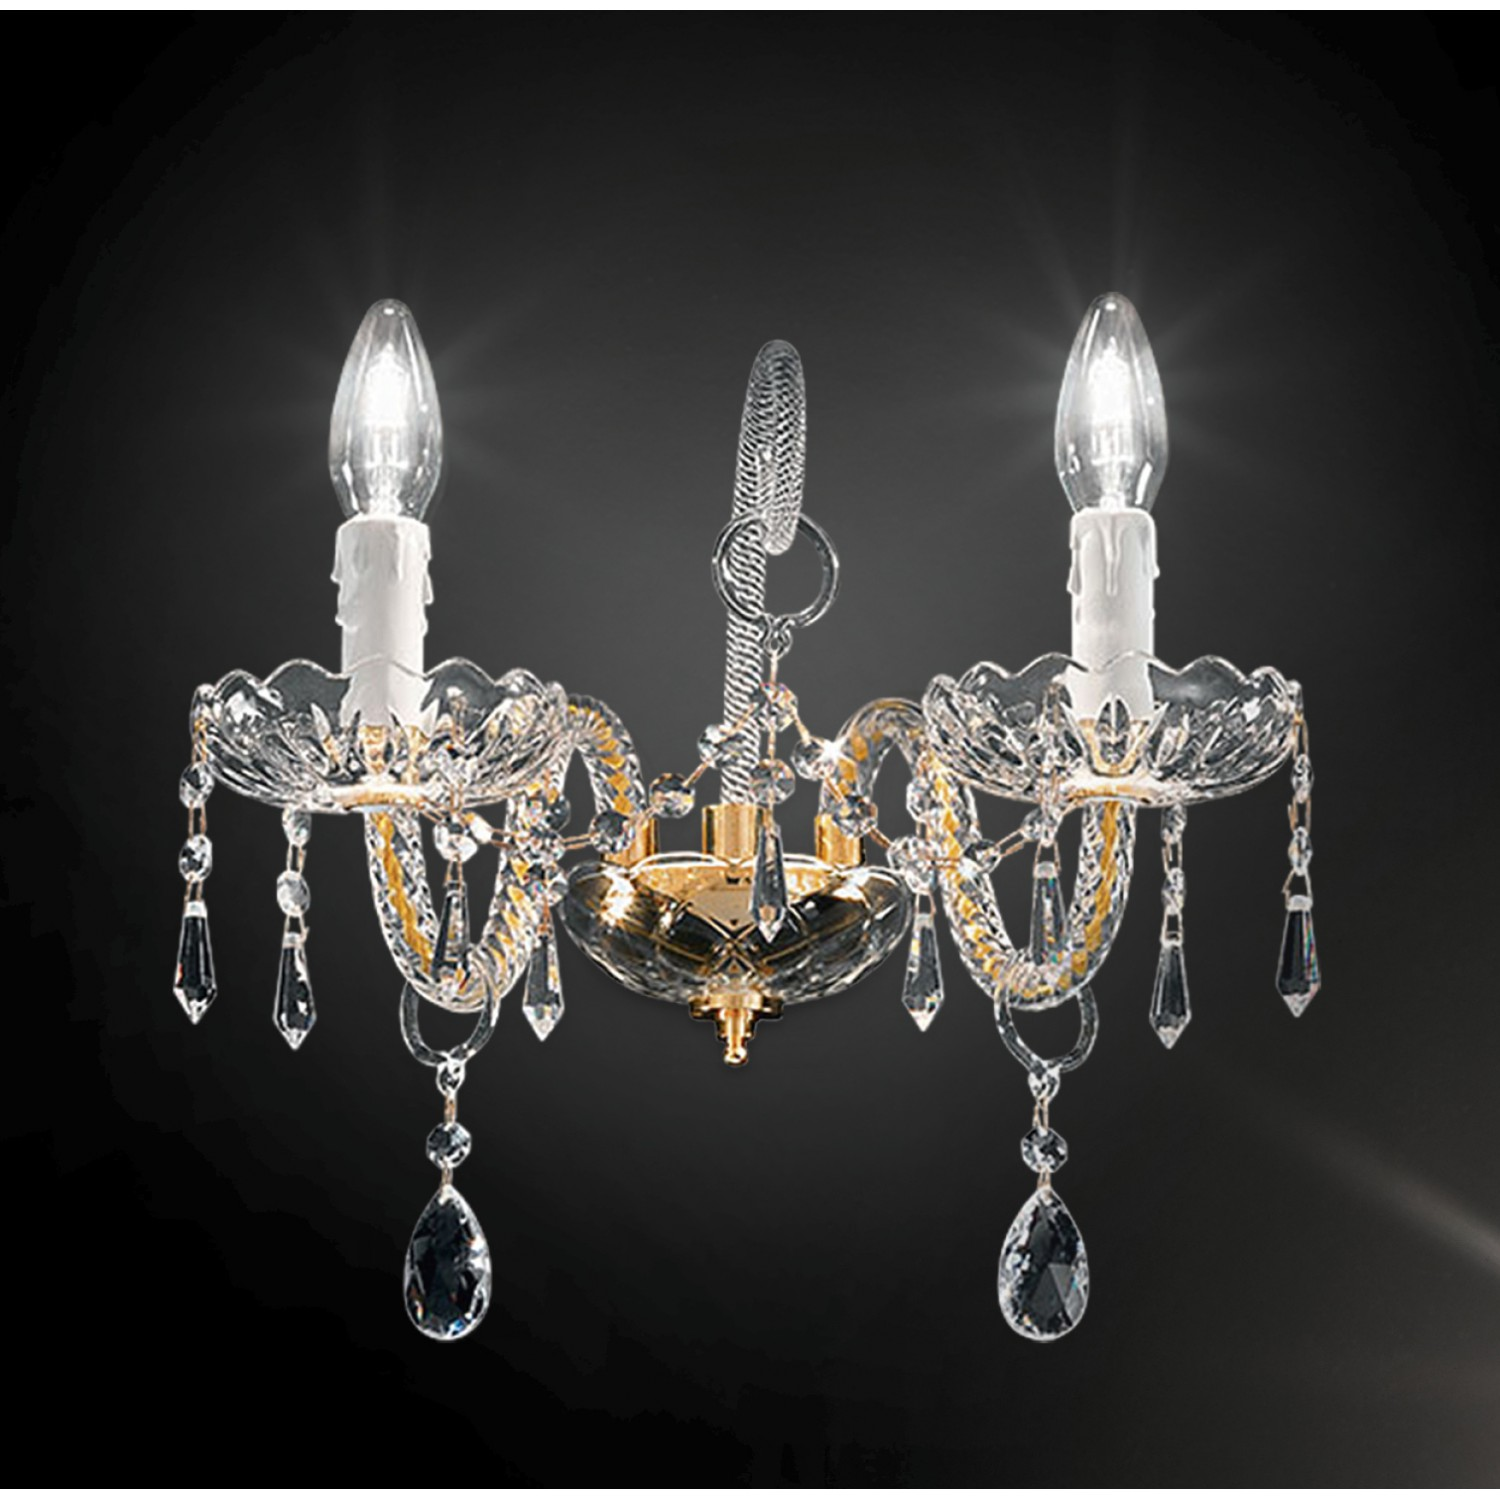 Asfour crystal wall lamp 408a2olasf artital lighting home design asfour crystal wall lamp 408a2olasf aloadofball Choice Image